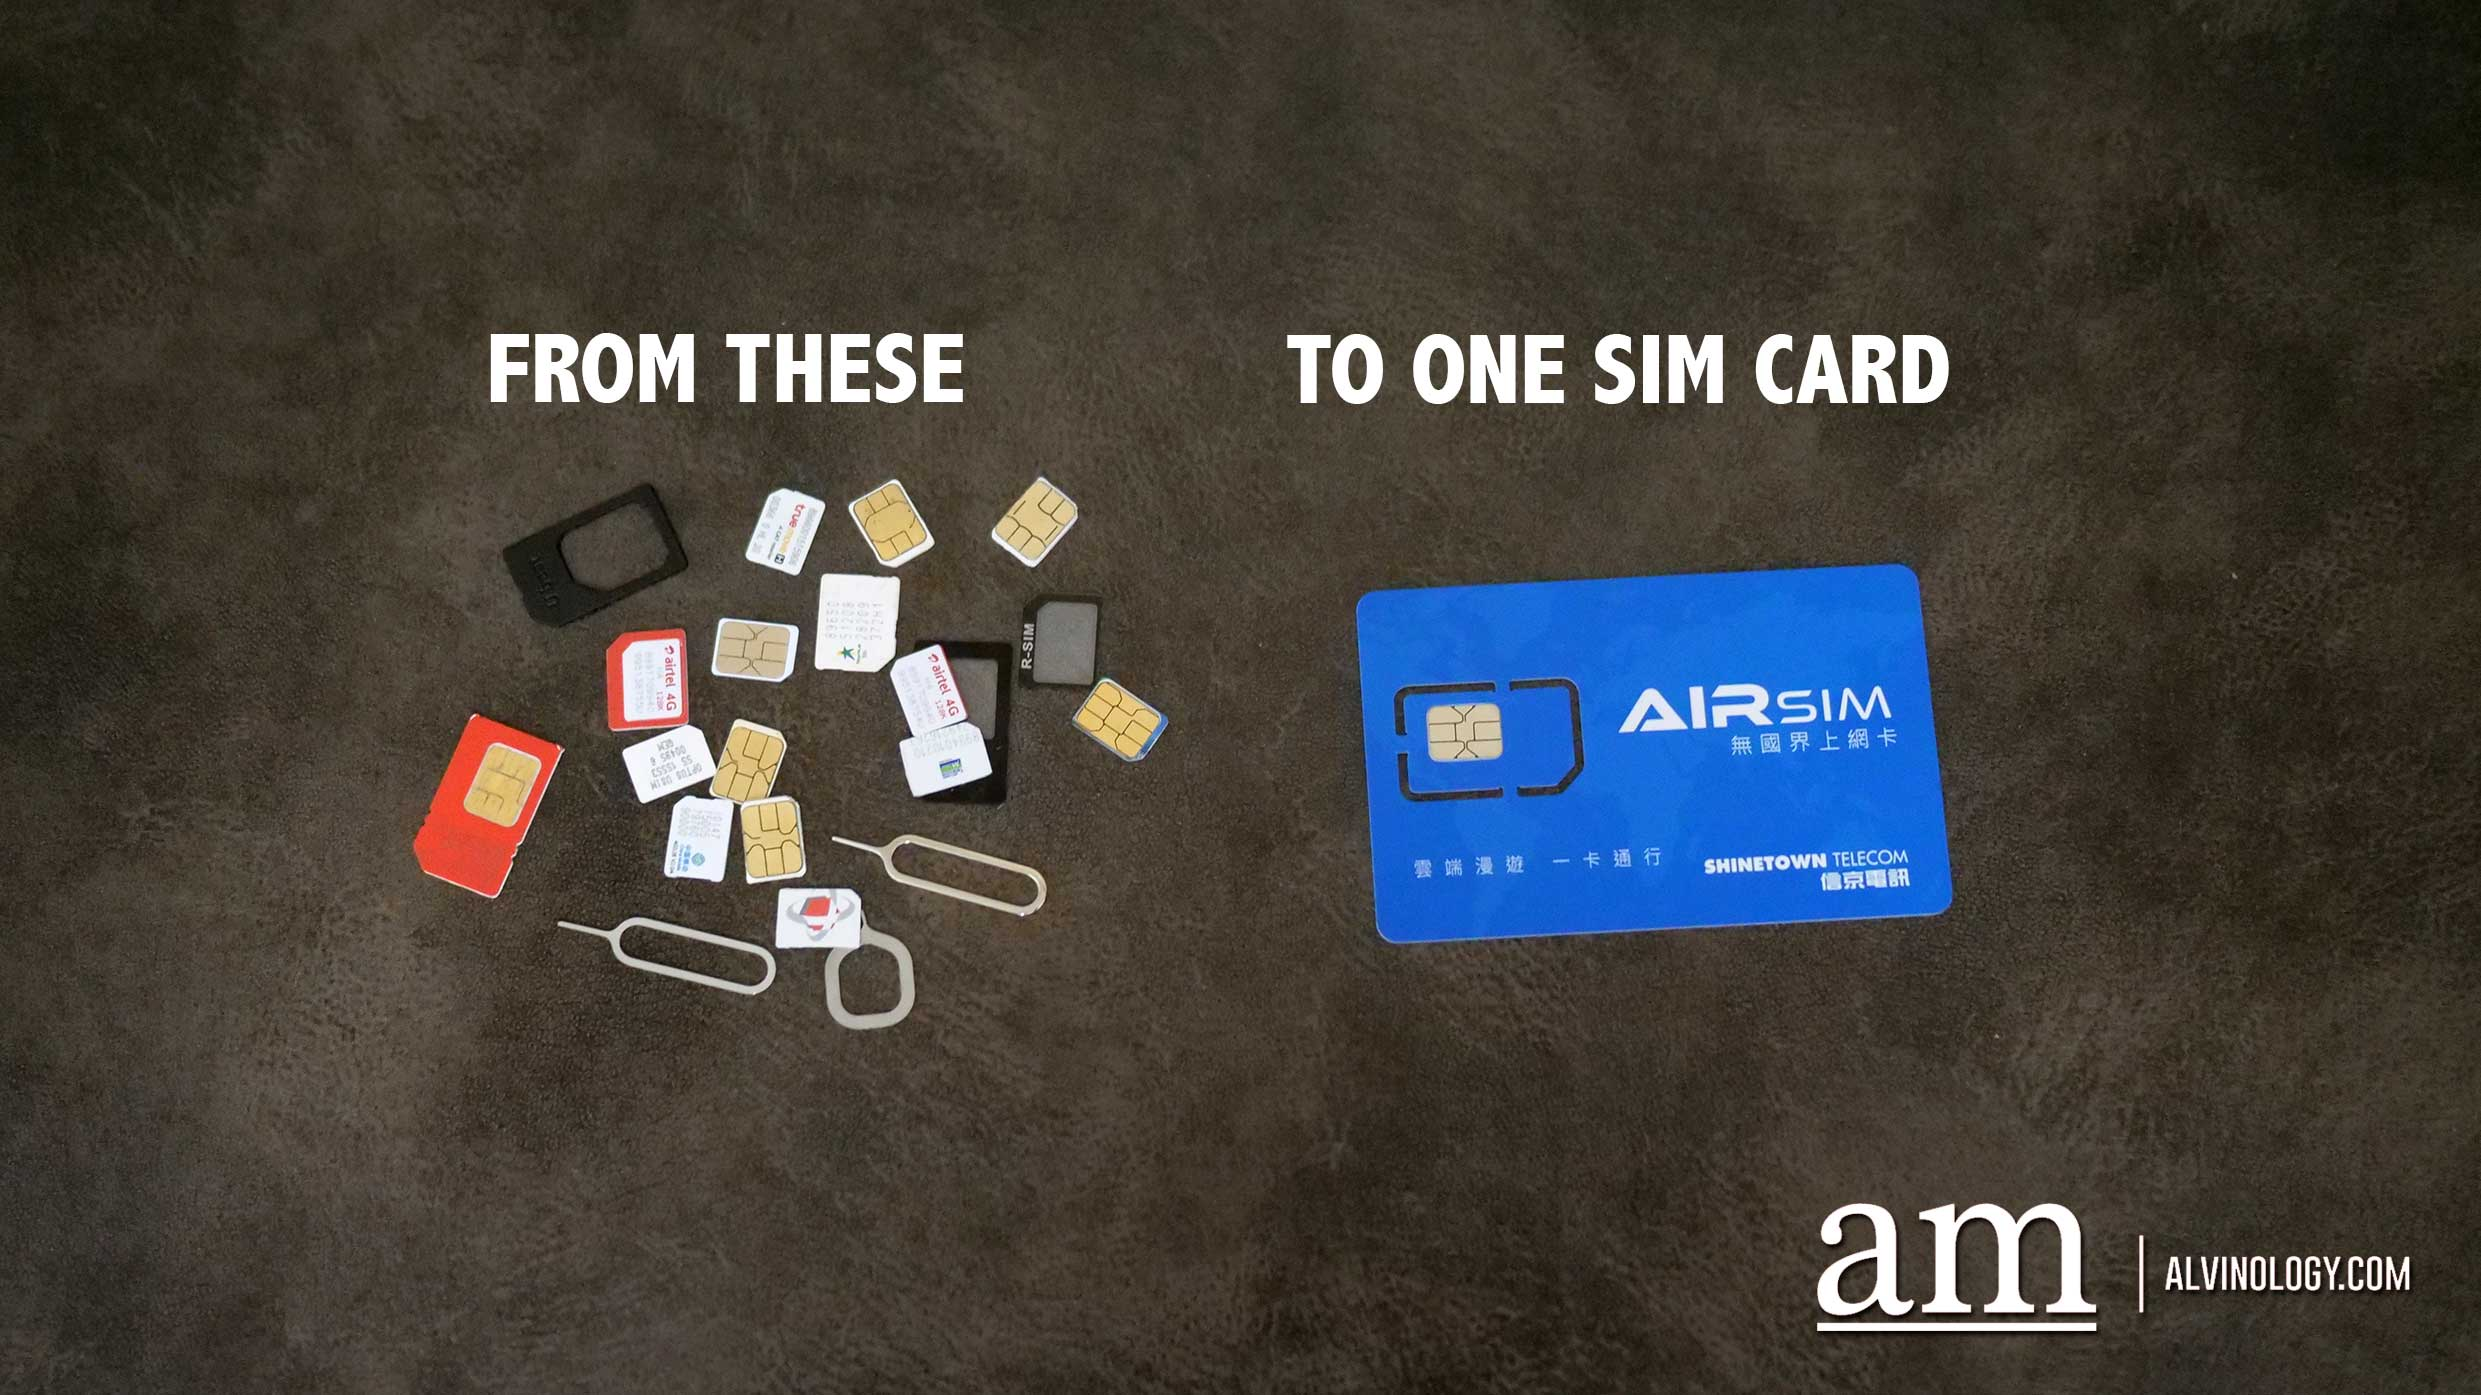 Enjoy data service in over 100 countries with just one SIM card from AIRSIM - here's how - Alvinology